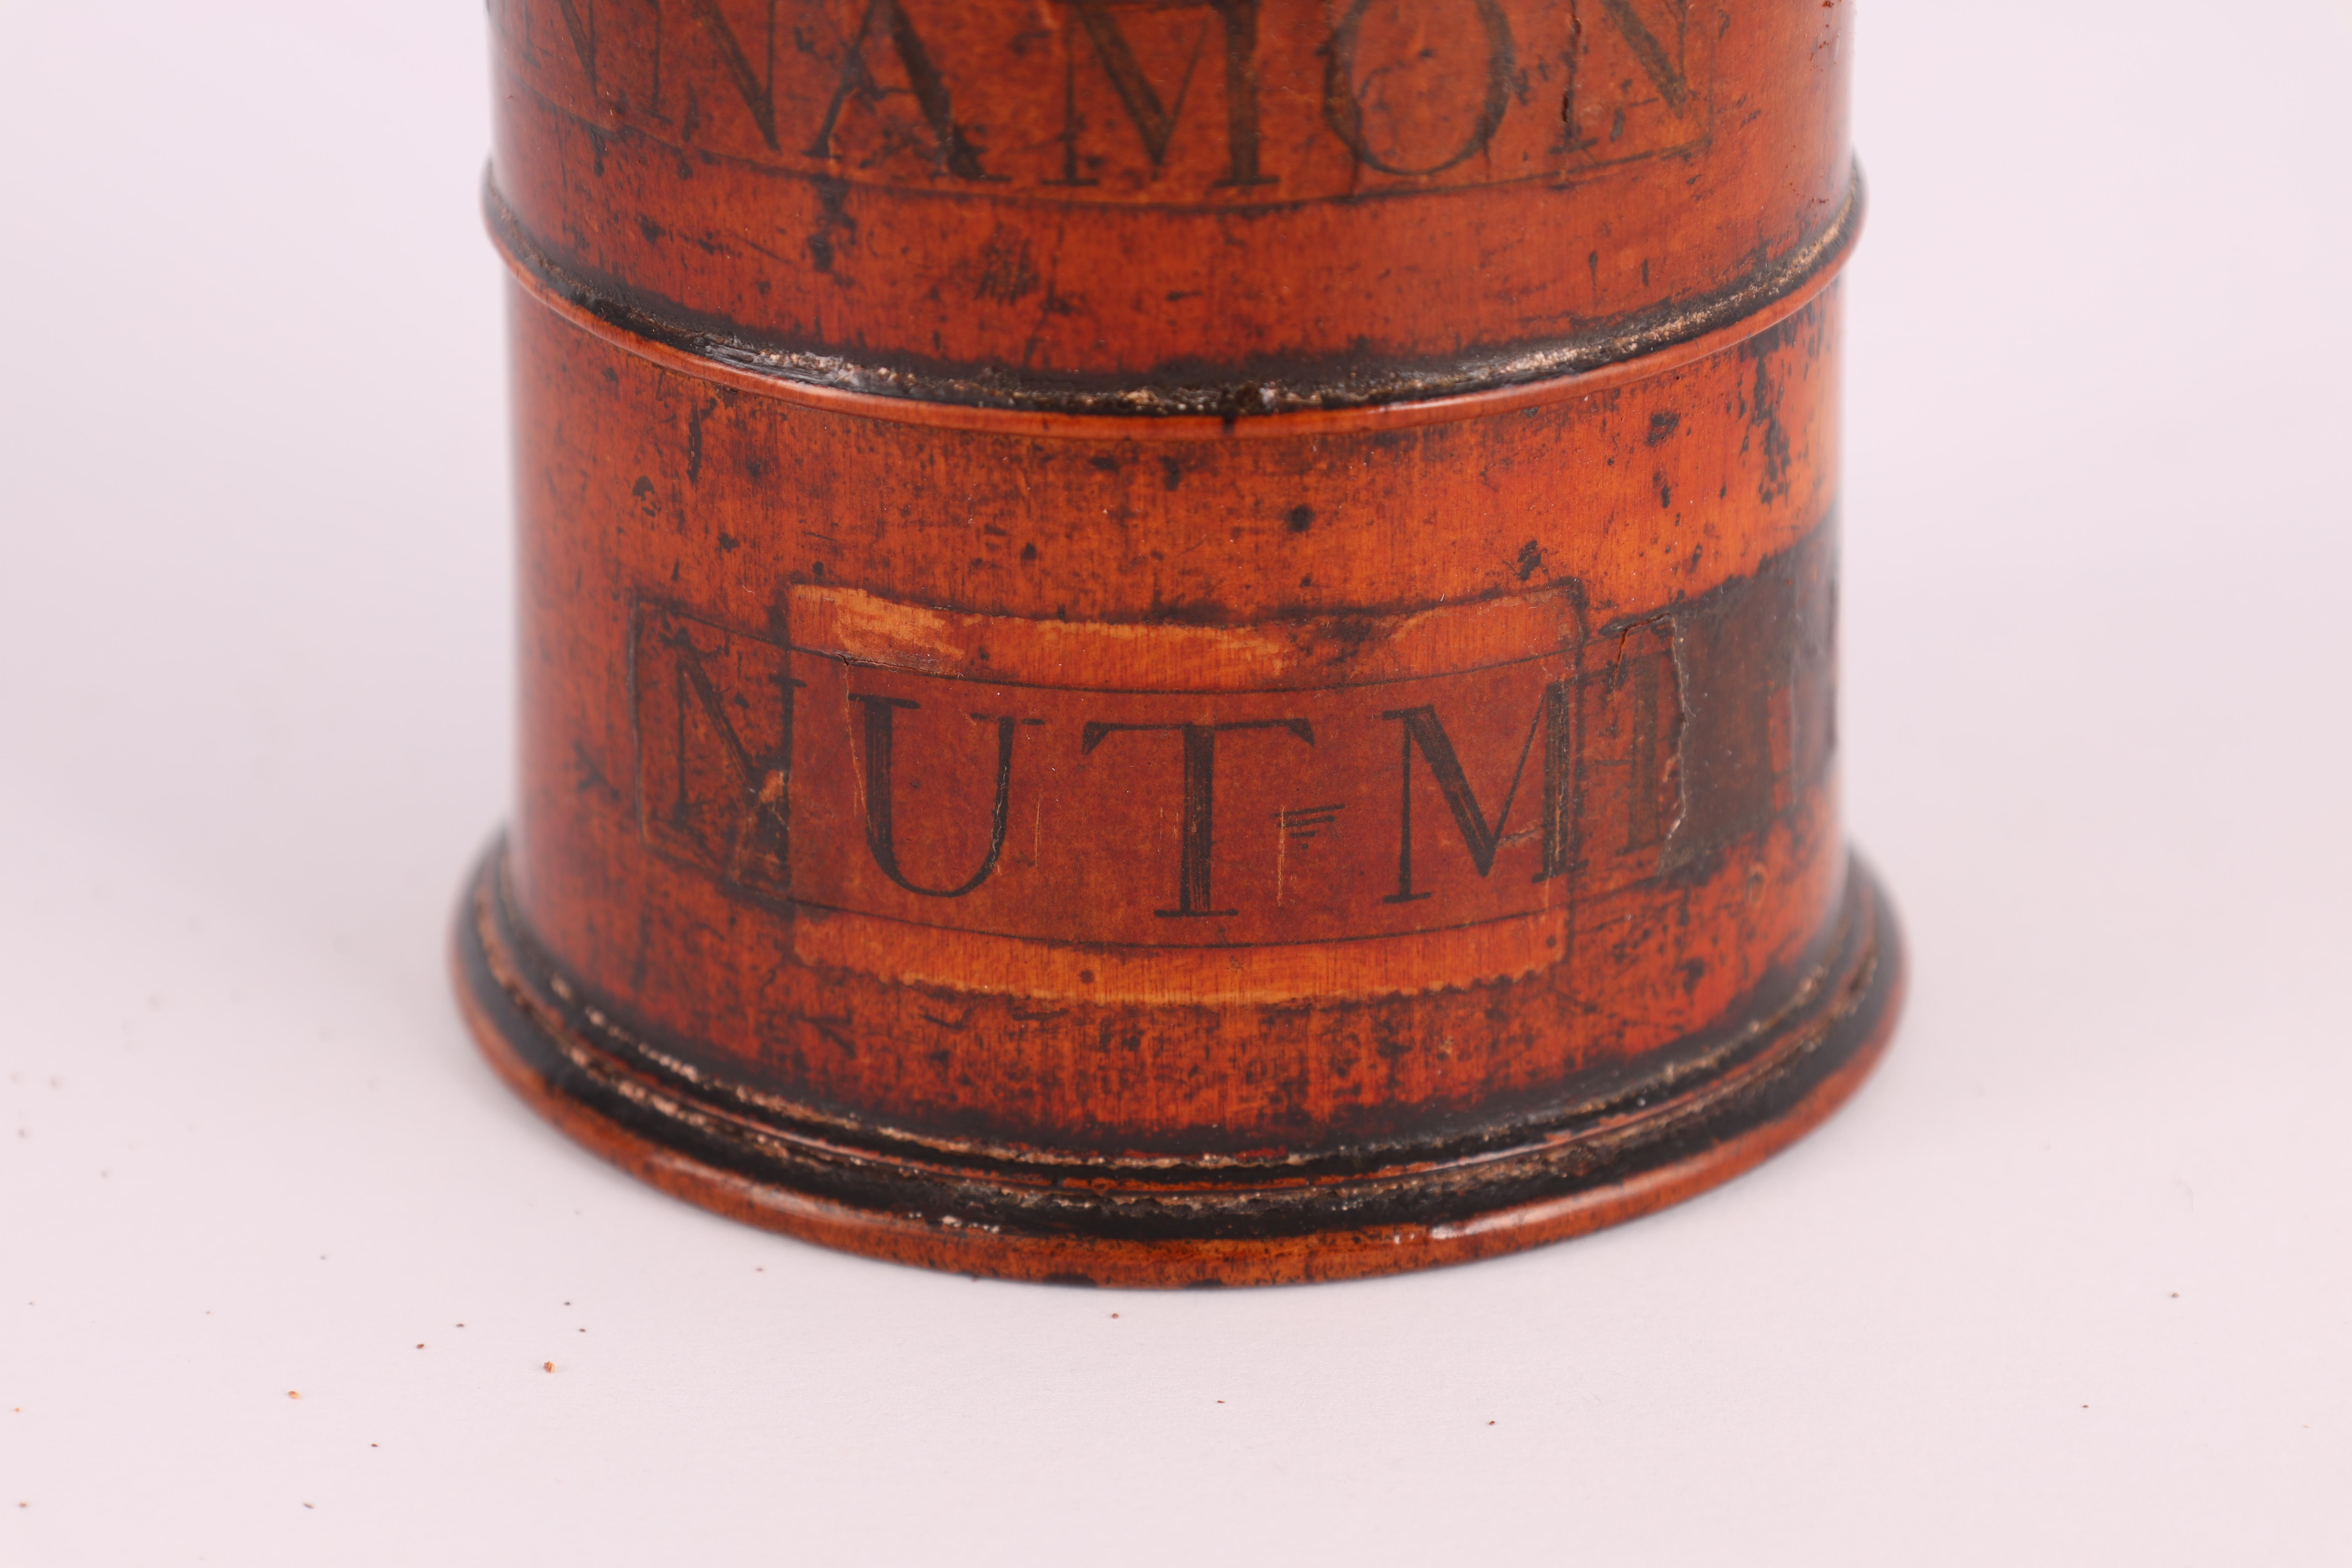 TWO EARLY 19TH CENTURY SYCAMORE TREEN SPICE TOWERS with original labels, the three stack 15cm - Image 3 of 13